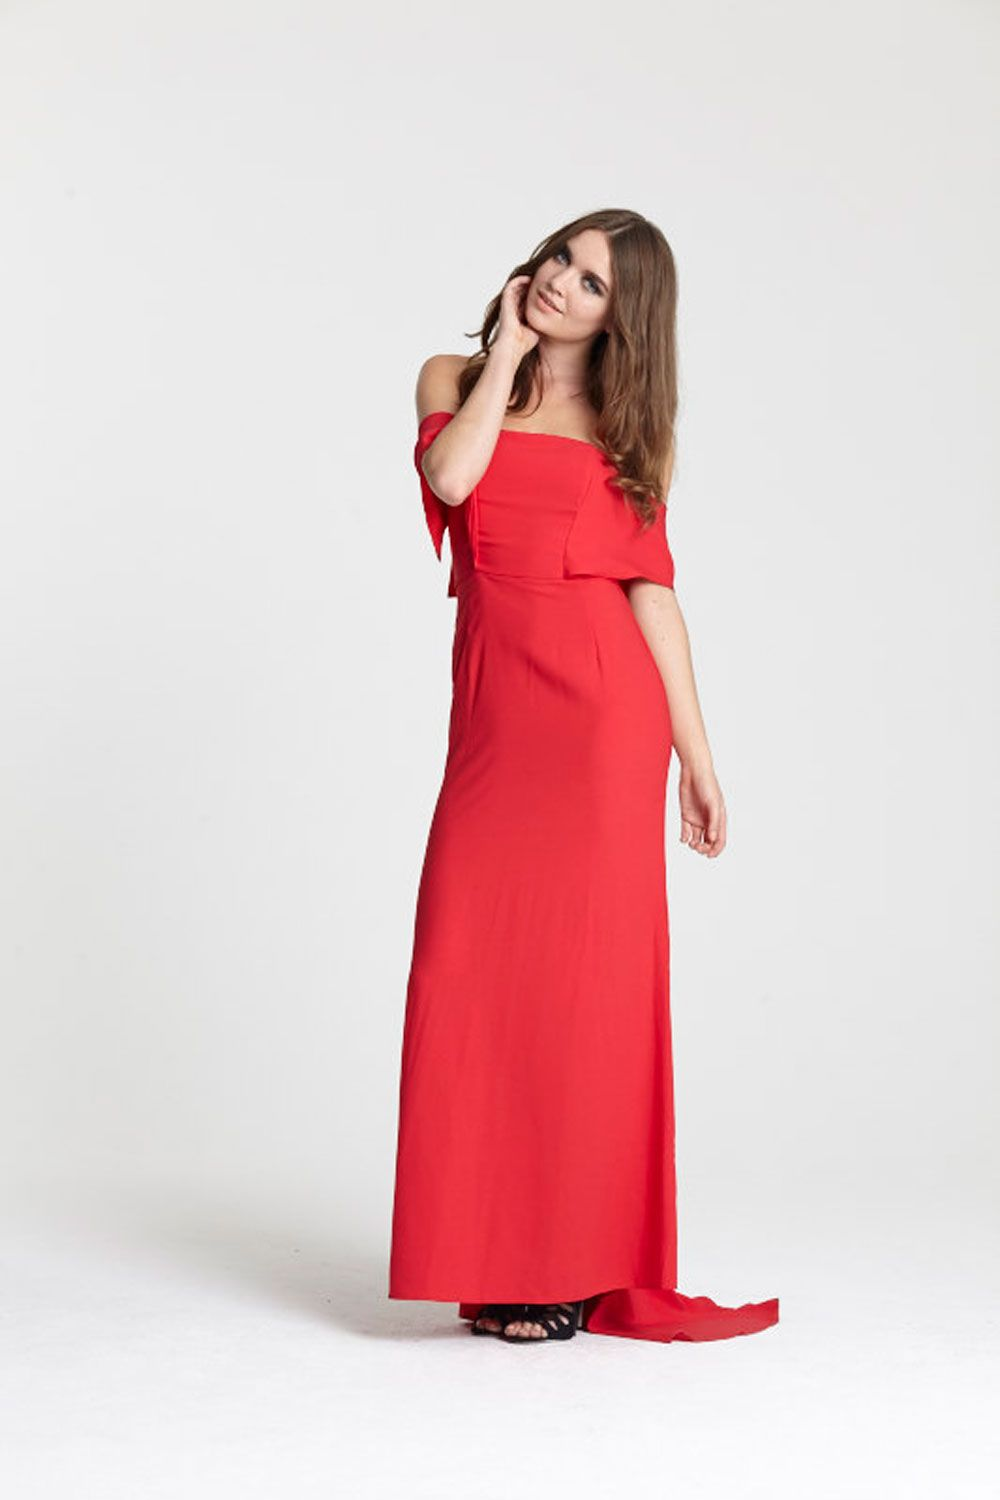 "<a target=""_blank"" href=""http://www.asos.com/asos/asos-red-carpet-soft-off-shoulder-fishtail-maxi-dress/prod/pgeproduct.aspx?iid=5367617&amp&#x3B;clr=Red&amp&#x3B;SearchQuery=red+long+dress&amp&#x3B;pgesize=36&amp&#x3B;pge=0&amp&#x3B;totalstyles=245&amp&#x3B;gridsize=3&amp&#x3B;gridrow=2&amp&#x3B;gridcolumn=3"">Buy the dress</a> and <a target=""_blank"" href=""http://www.asos.com/ALDO/ALDO-Miroiwen-Black-Leather-Ghillie-Tie-Up-Sandals/Prod/pgeproduct.aspx?iid=5335066&amp&#x3B;cid=4172&amp&#x3B;sh=0&amp&#x3B;pge=0&amp&#x3B;pgesize=36&amp&#x3B;sort=-1&amp&#x3B;clr=Black+suede&amp&#x3B;totalstyles=1753&amp&#x3B;gridsize=3"">heels</a>"